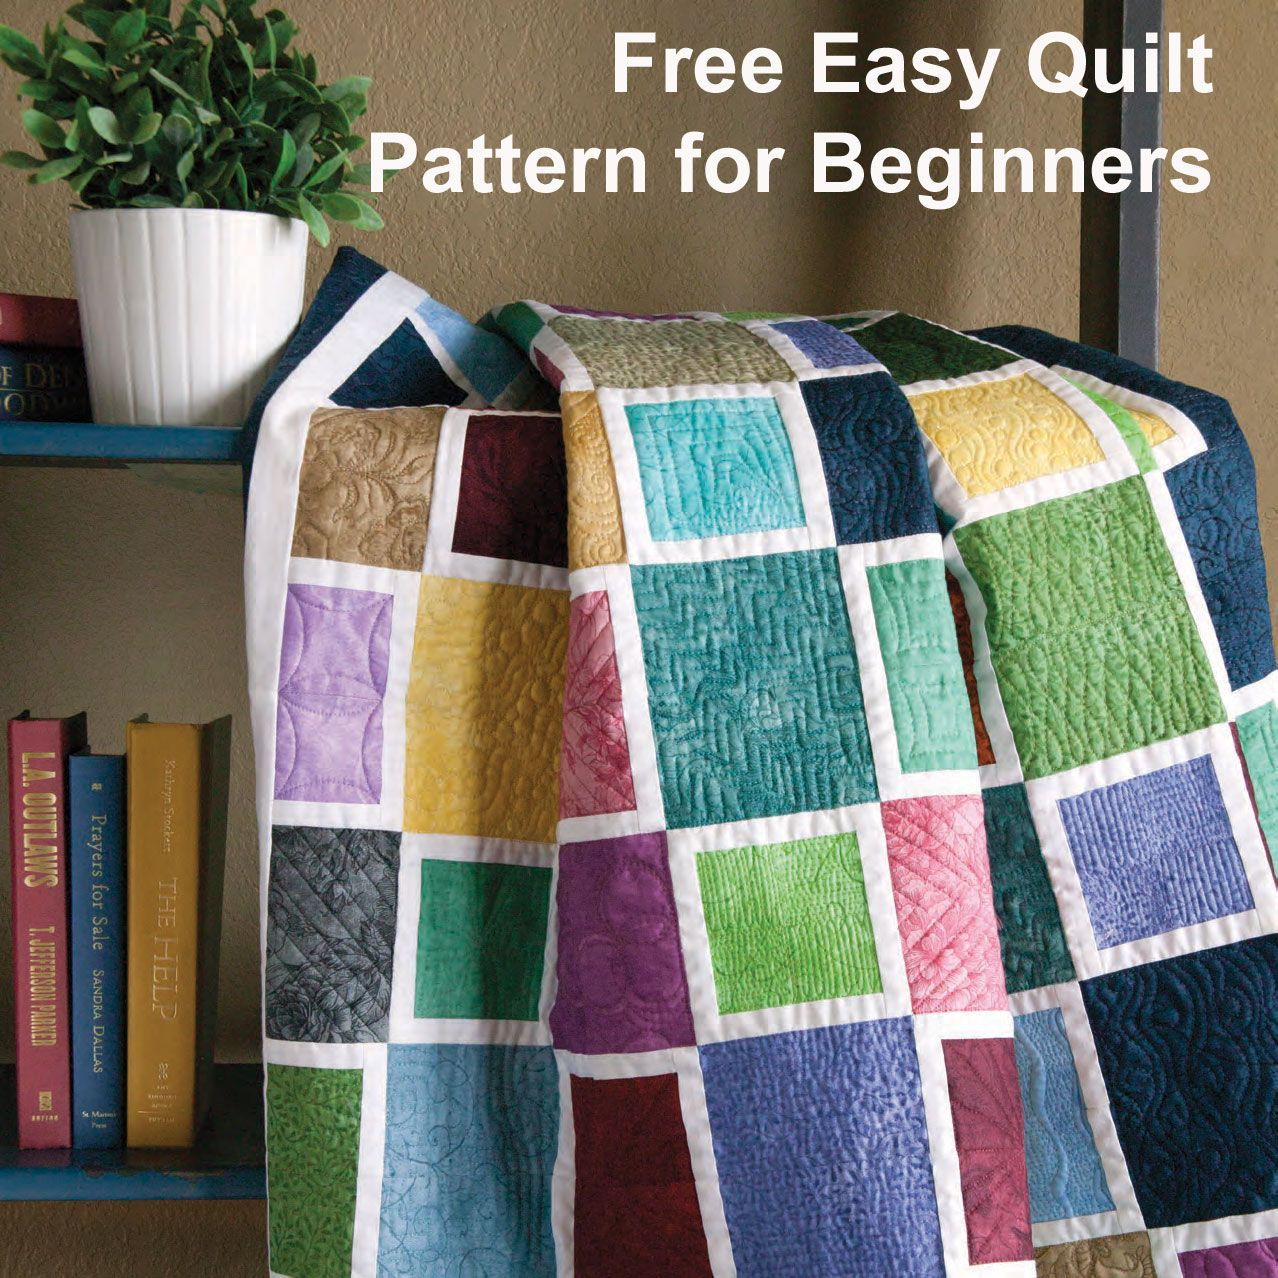 Free Patterns for Beginning Quilting: Mediterranean Mosaic by ... : easy quilts for beginners free patterns - Adamdwight.com